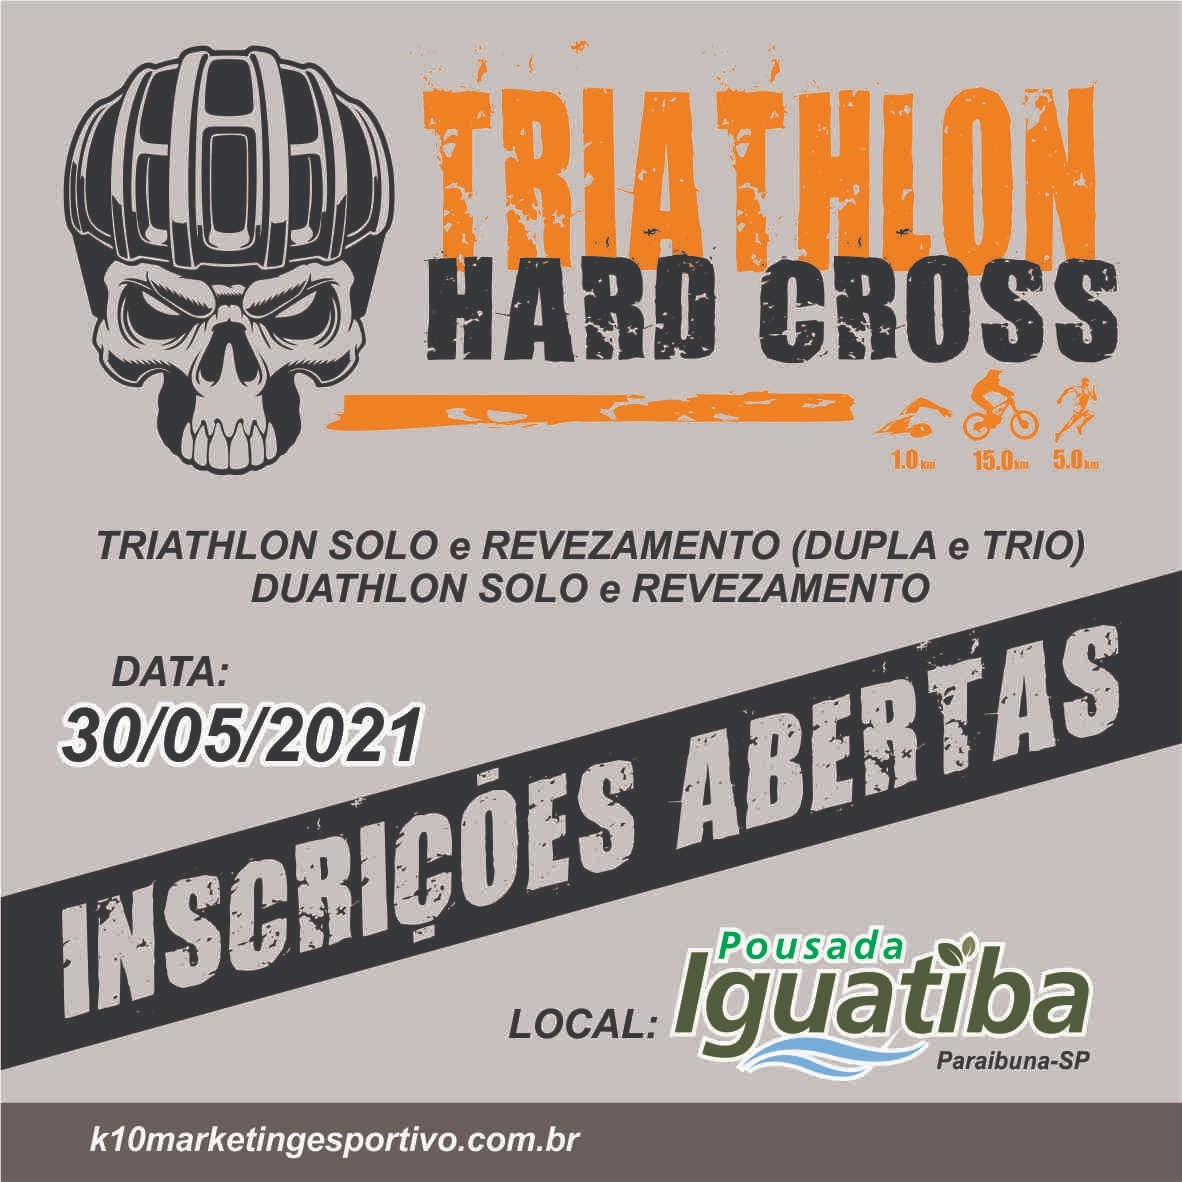 TRIATHLON HARD CROSS